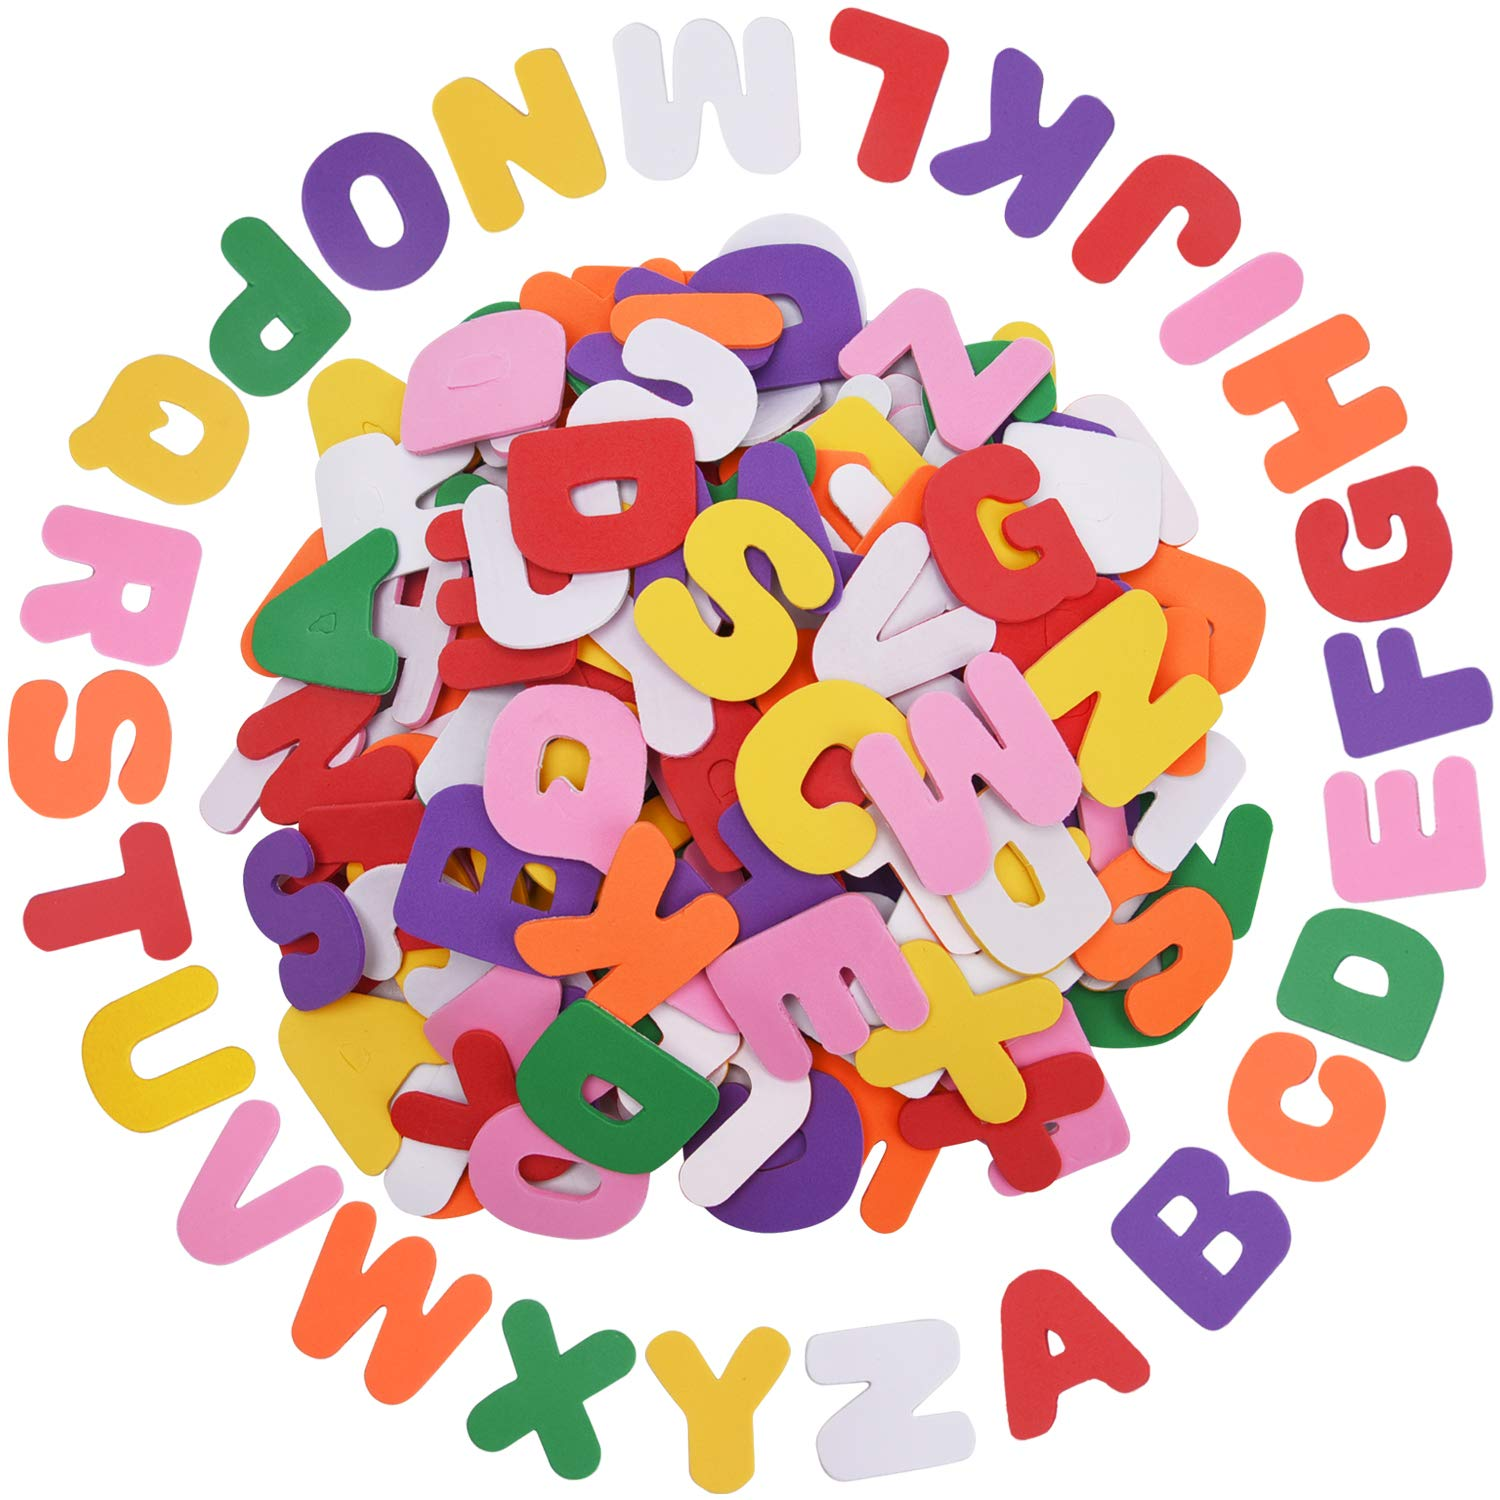 Livder 200 Pieces EVA Self Adhesive Foam Letter Alphabet Stickers for Children's DIY Crafts, Room Decoration